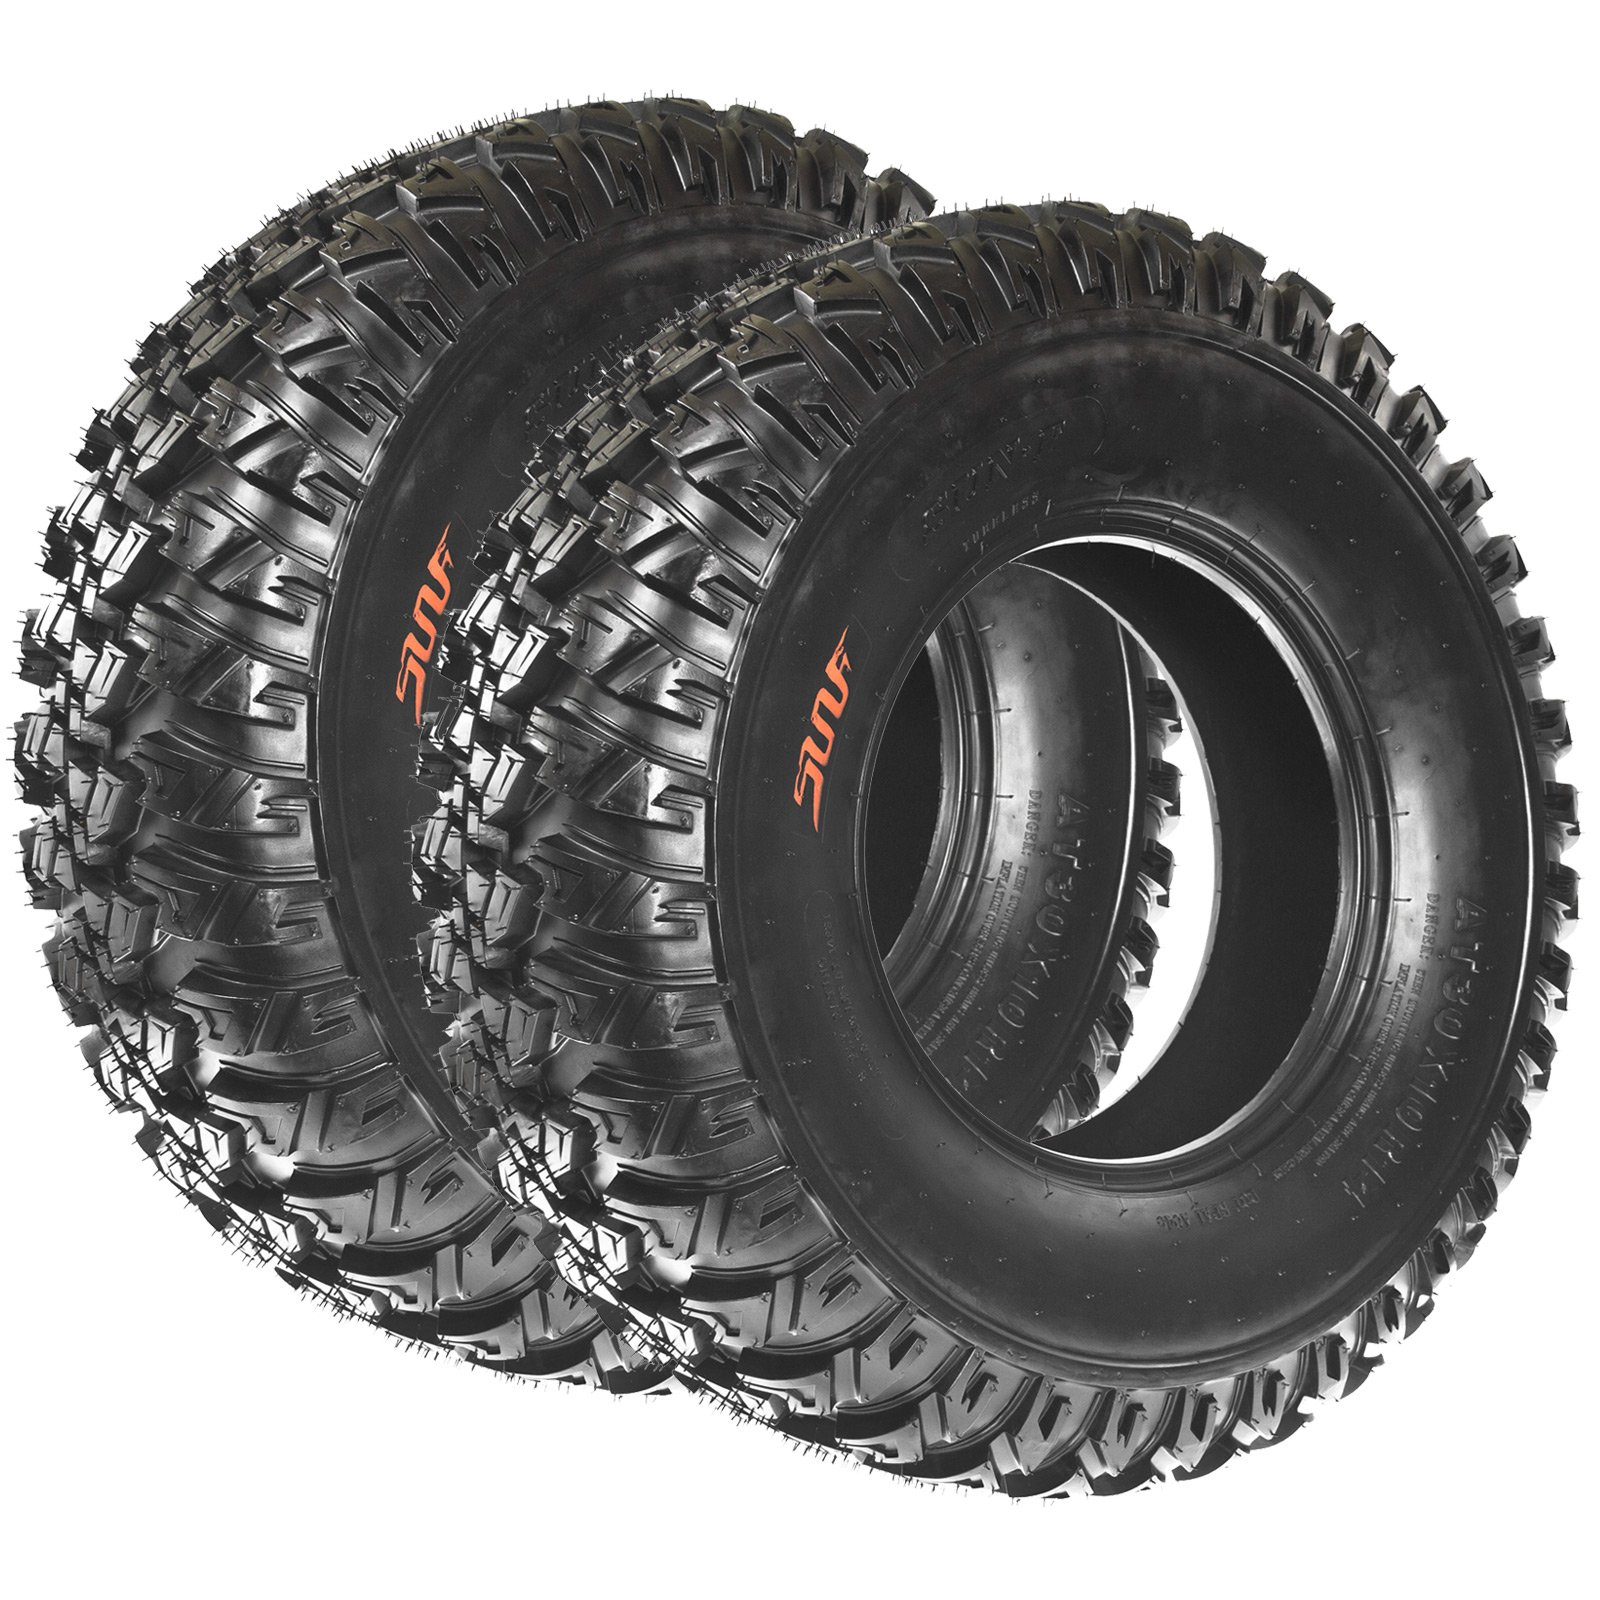 SunF A045 30x10R14 Radial ATV/UTV All-Terrain Off-Road Tires , 8 Ply Rated (Pair of 2)